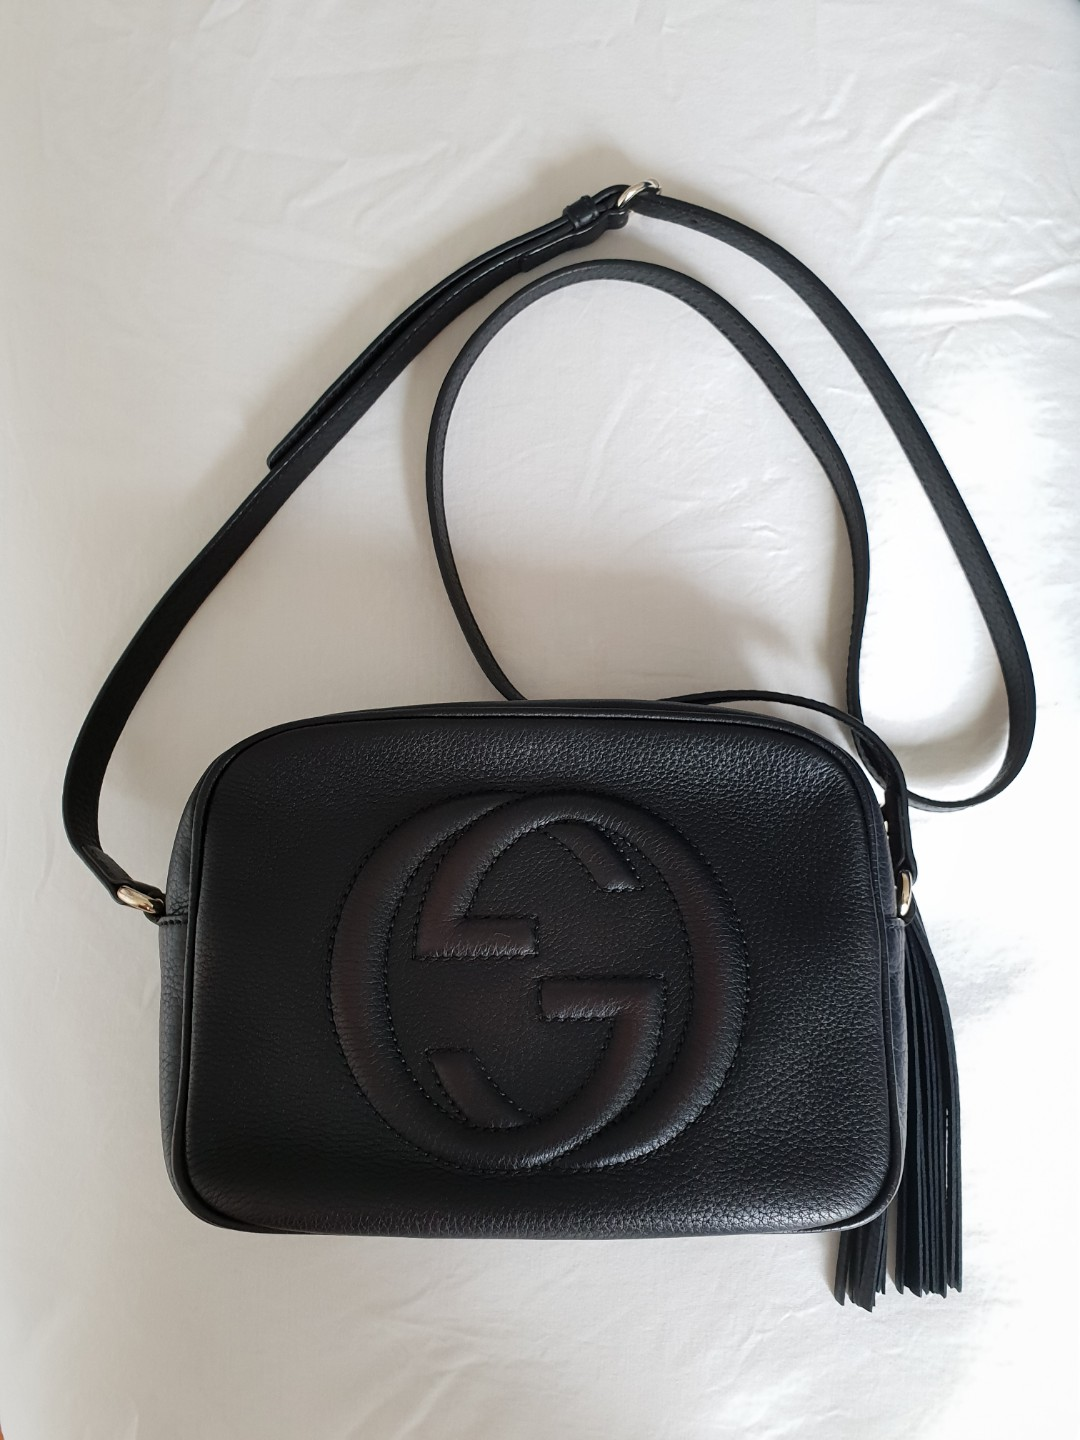 583a6a7737d Gucci Soho Disco Bag Black